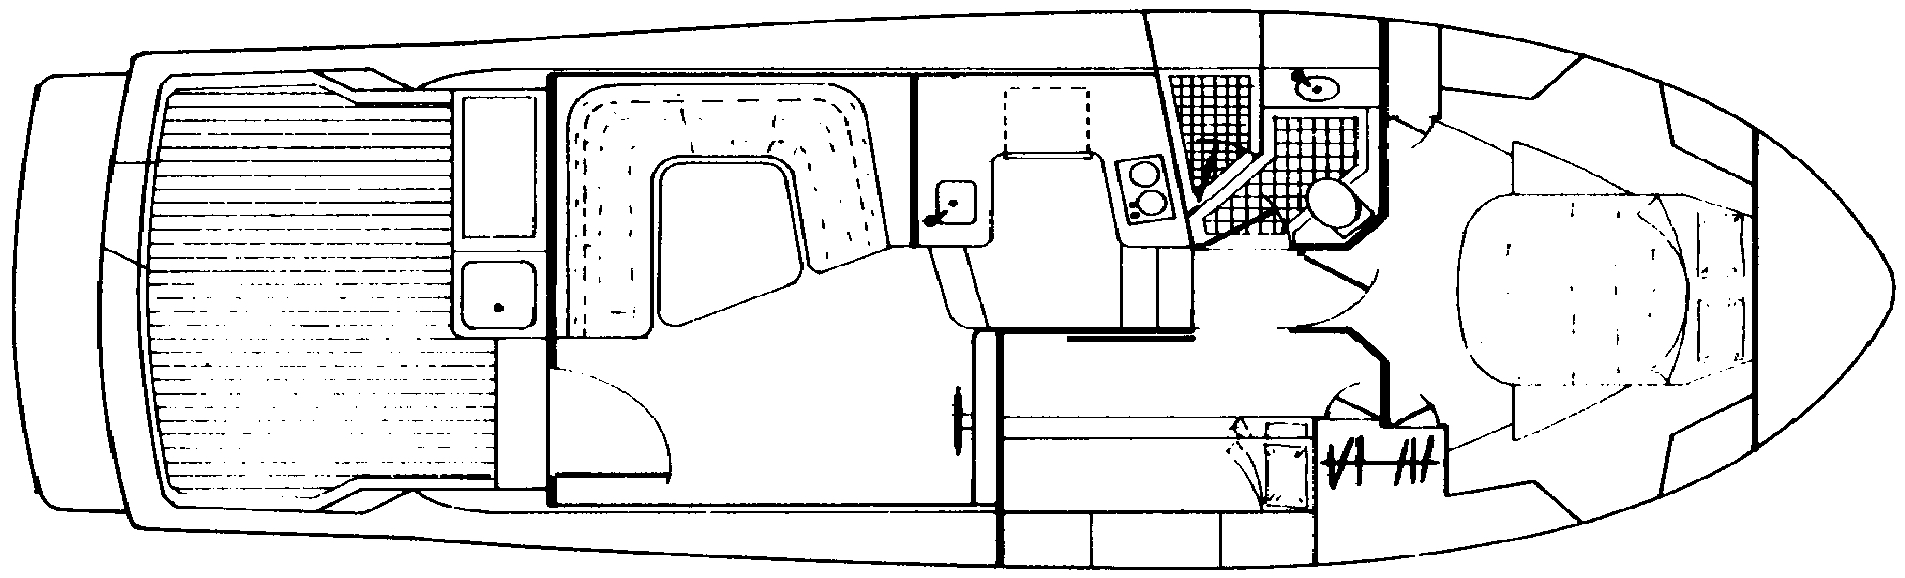 39 Convertible Floor Plan 1